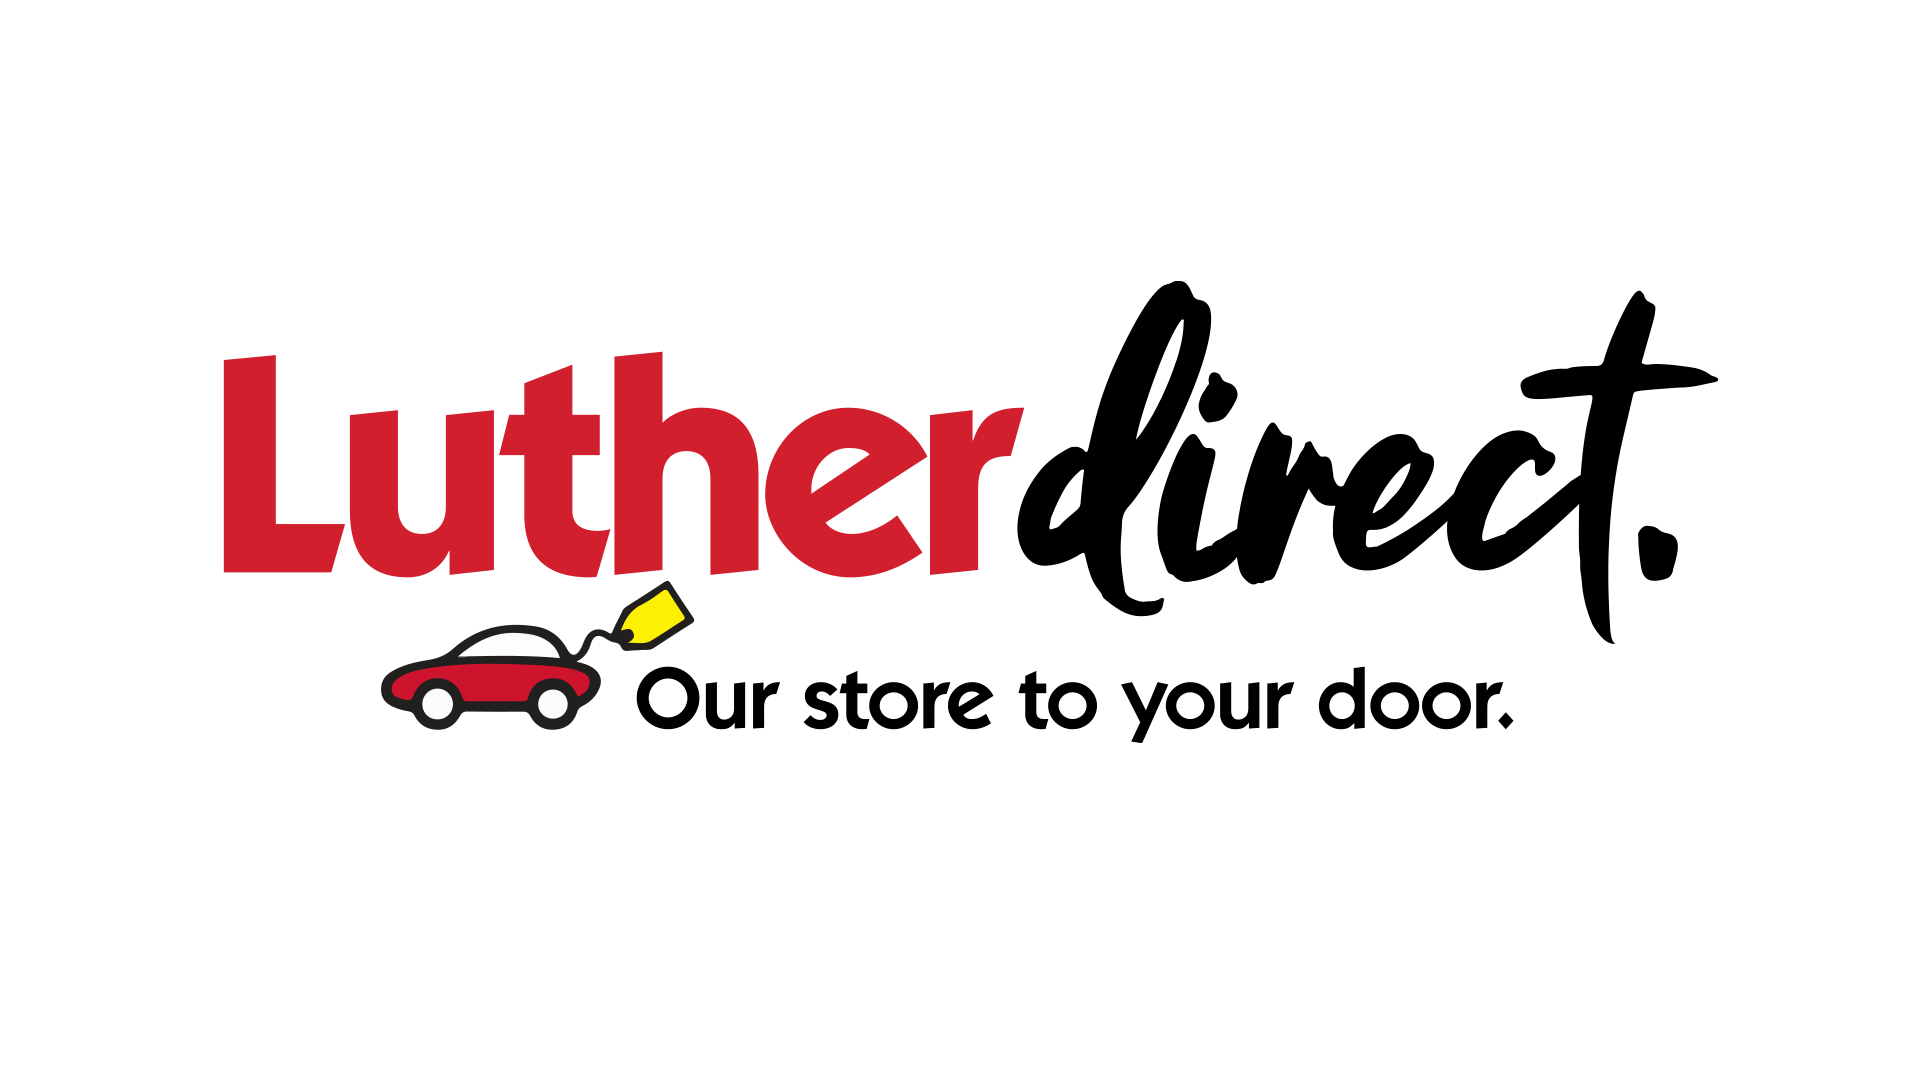 Luther Direct